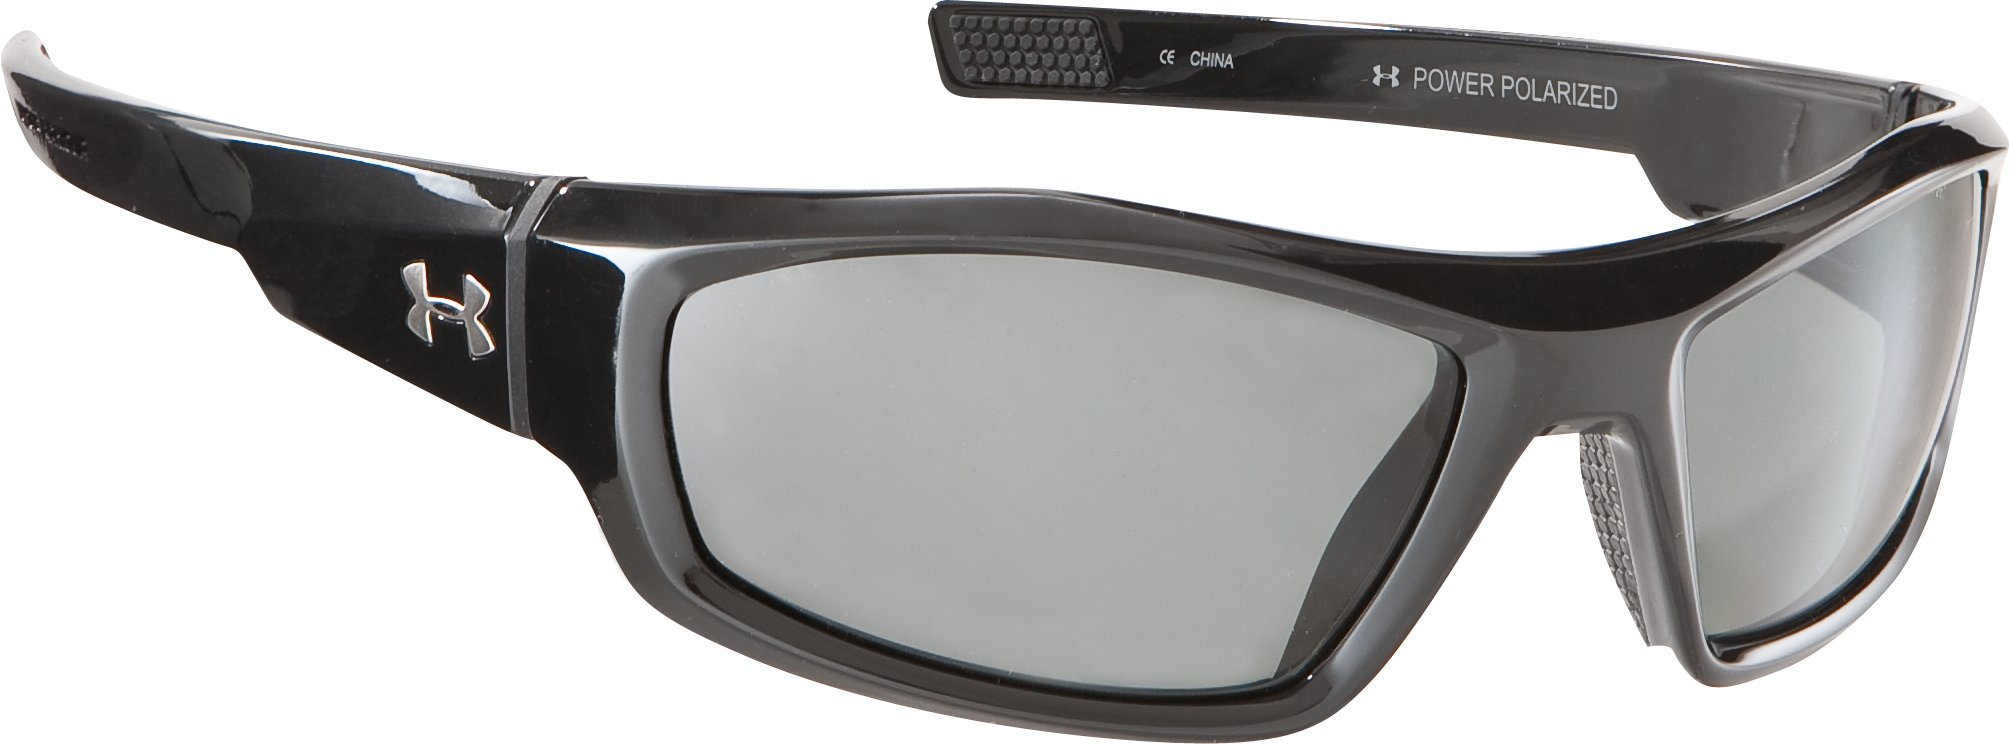 UA Power Polarized Multiflection™ Sunglasses, Shiny Black, zoomed image